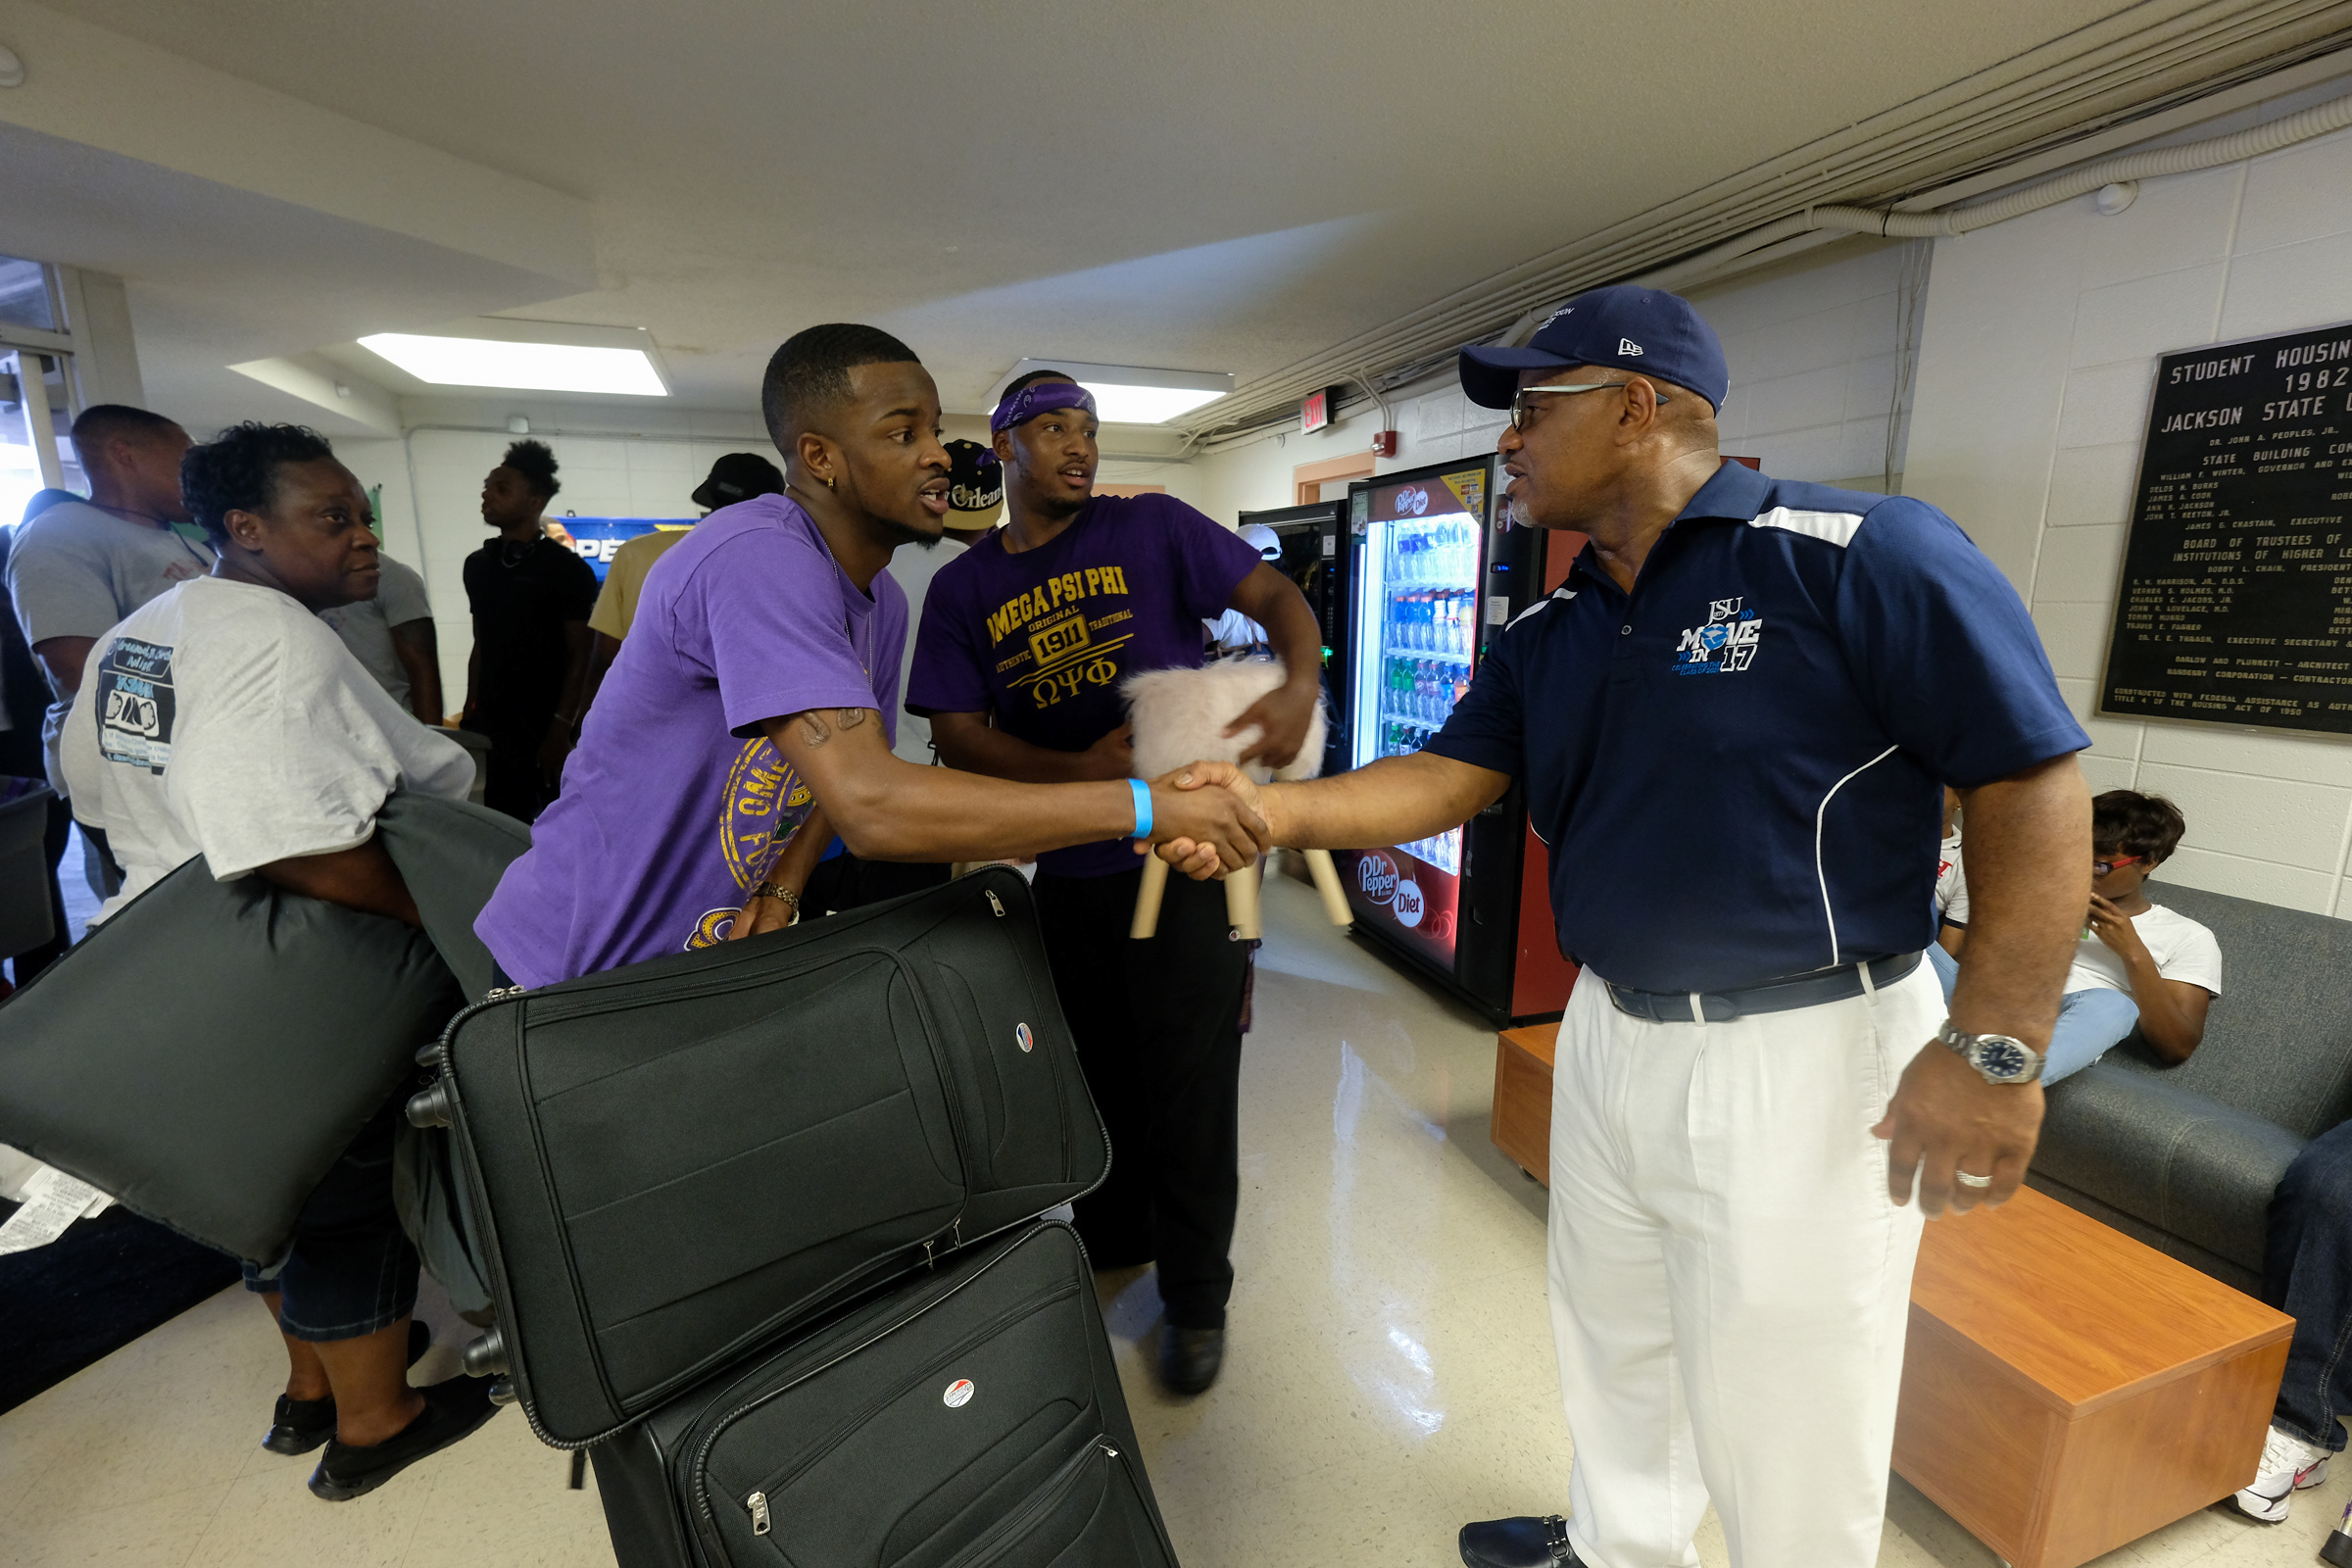 JSU President William B. Bynum, Jr., greets student-volunteer DaQuan Powell in the lobby of McAlister-Whiteside. Bynum  believes that in order to lead, students must also know how to serve. (Photo by Charles A. Smith/JSU)